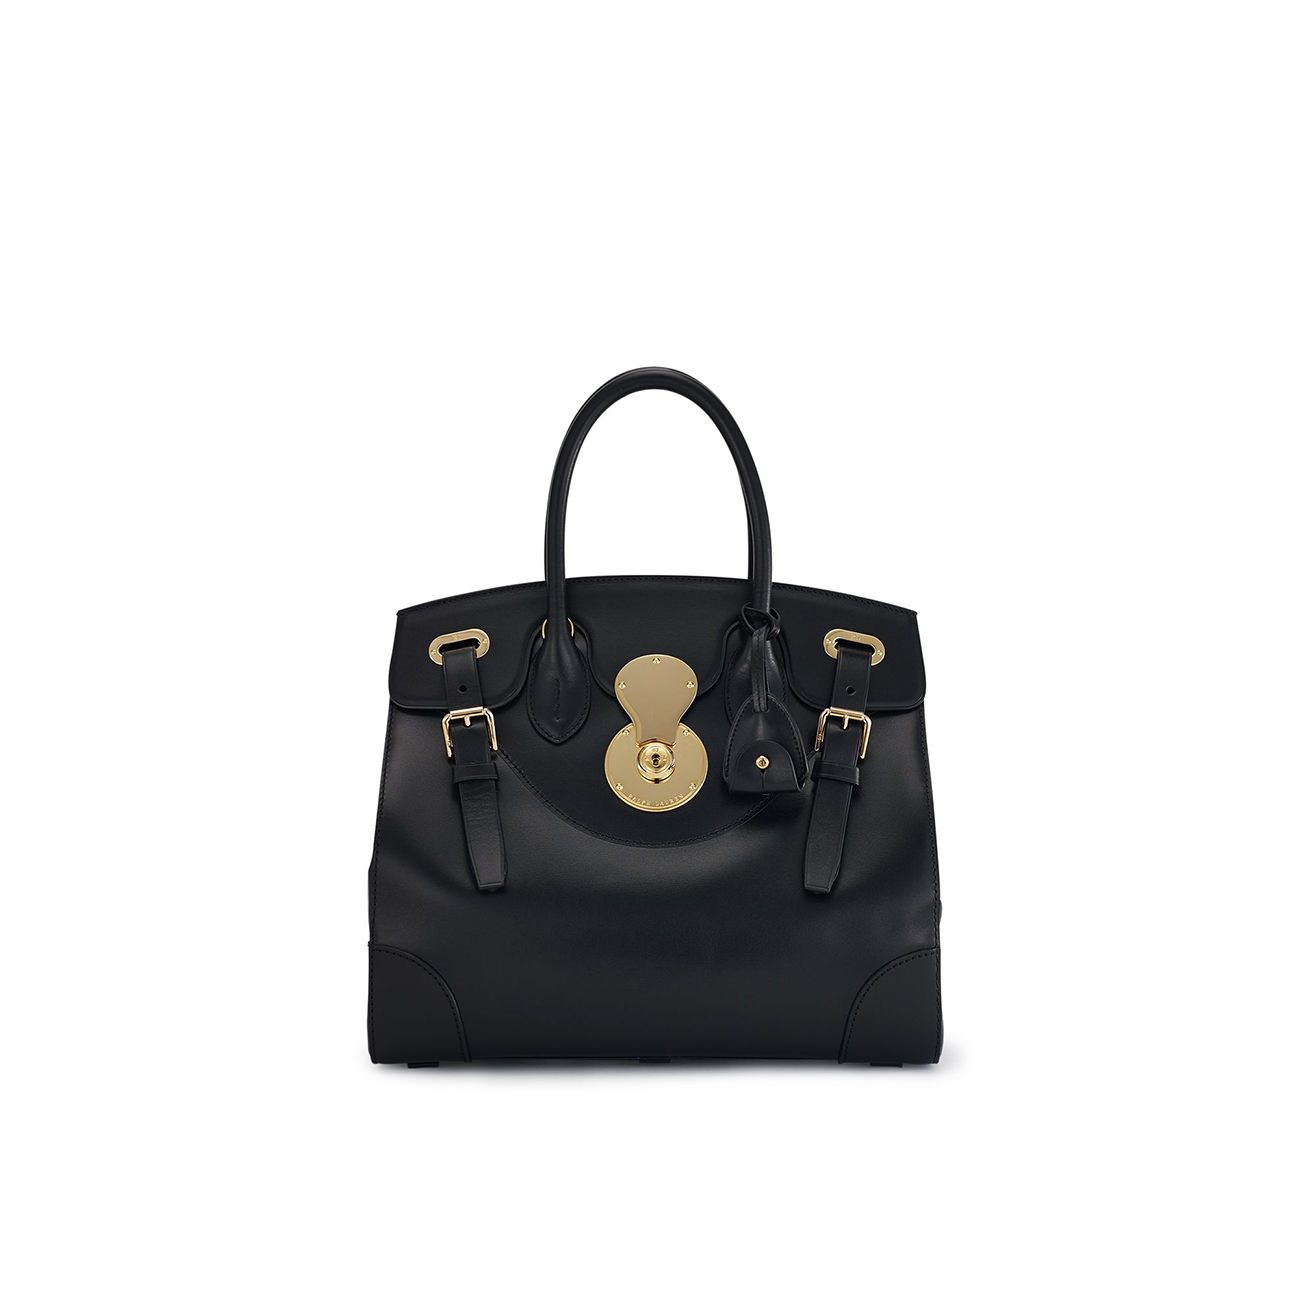 Ralph Lauren presents the Ricky Bag with light - via www.themilliardaire.co 5a7770696347f